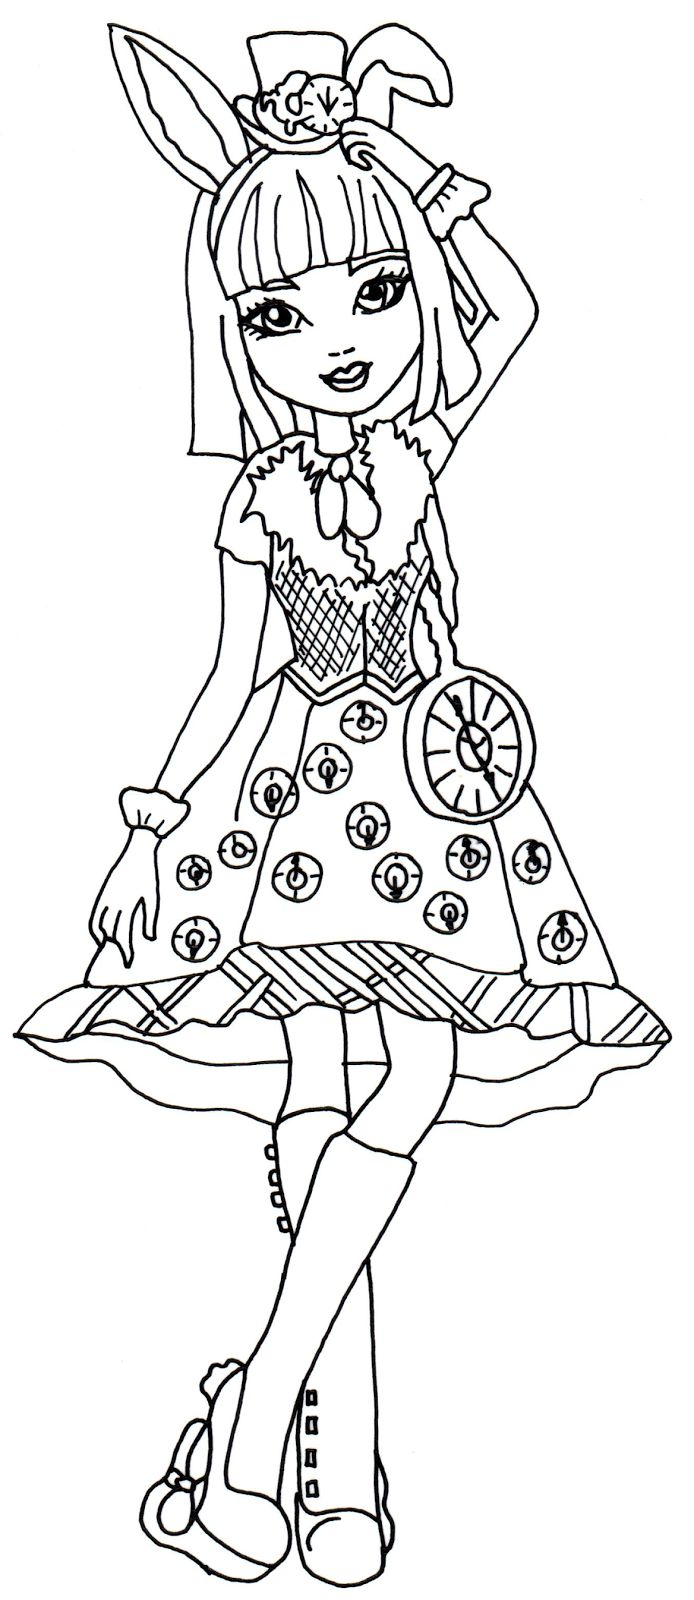 Coloring pages printable bunny - Free Printable Ever After High Coloring Pages Bunny Blanc